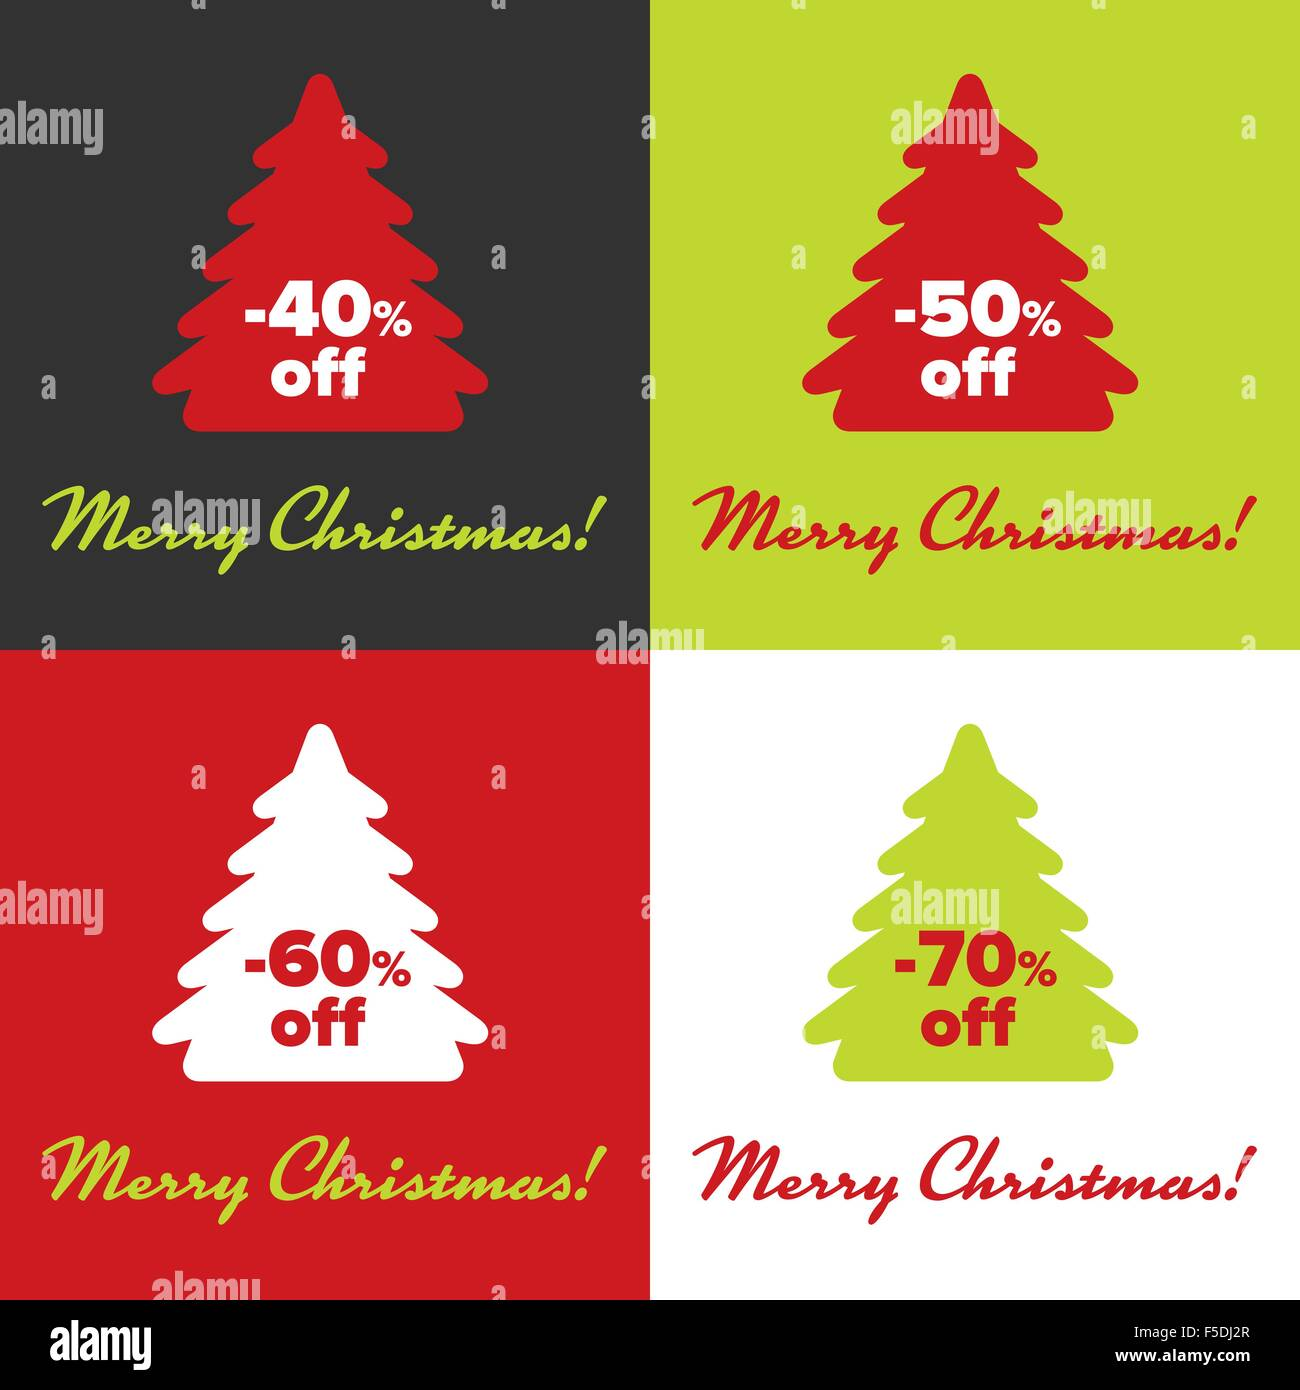 merry christmas sticker template with sample text stock vector art